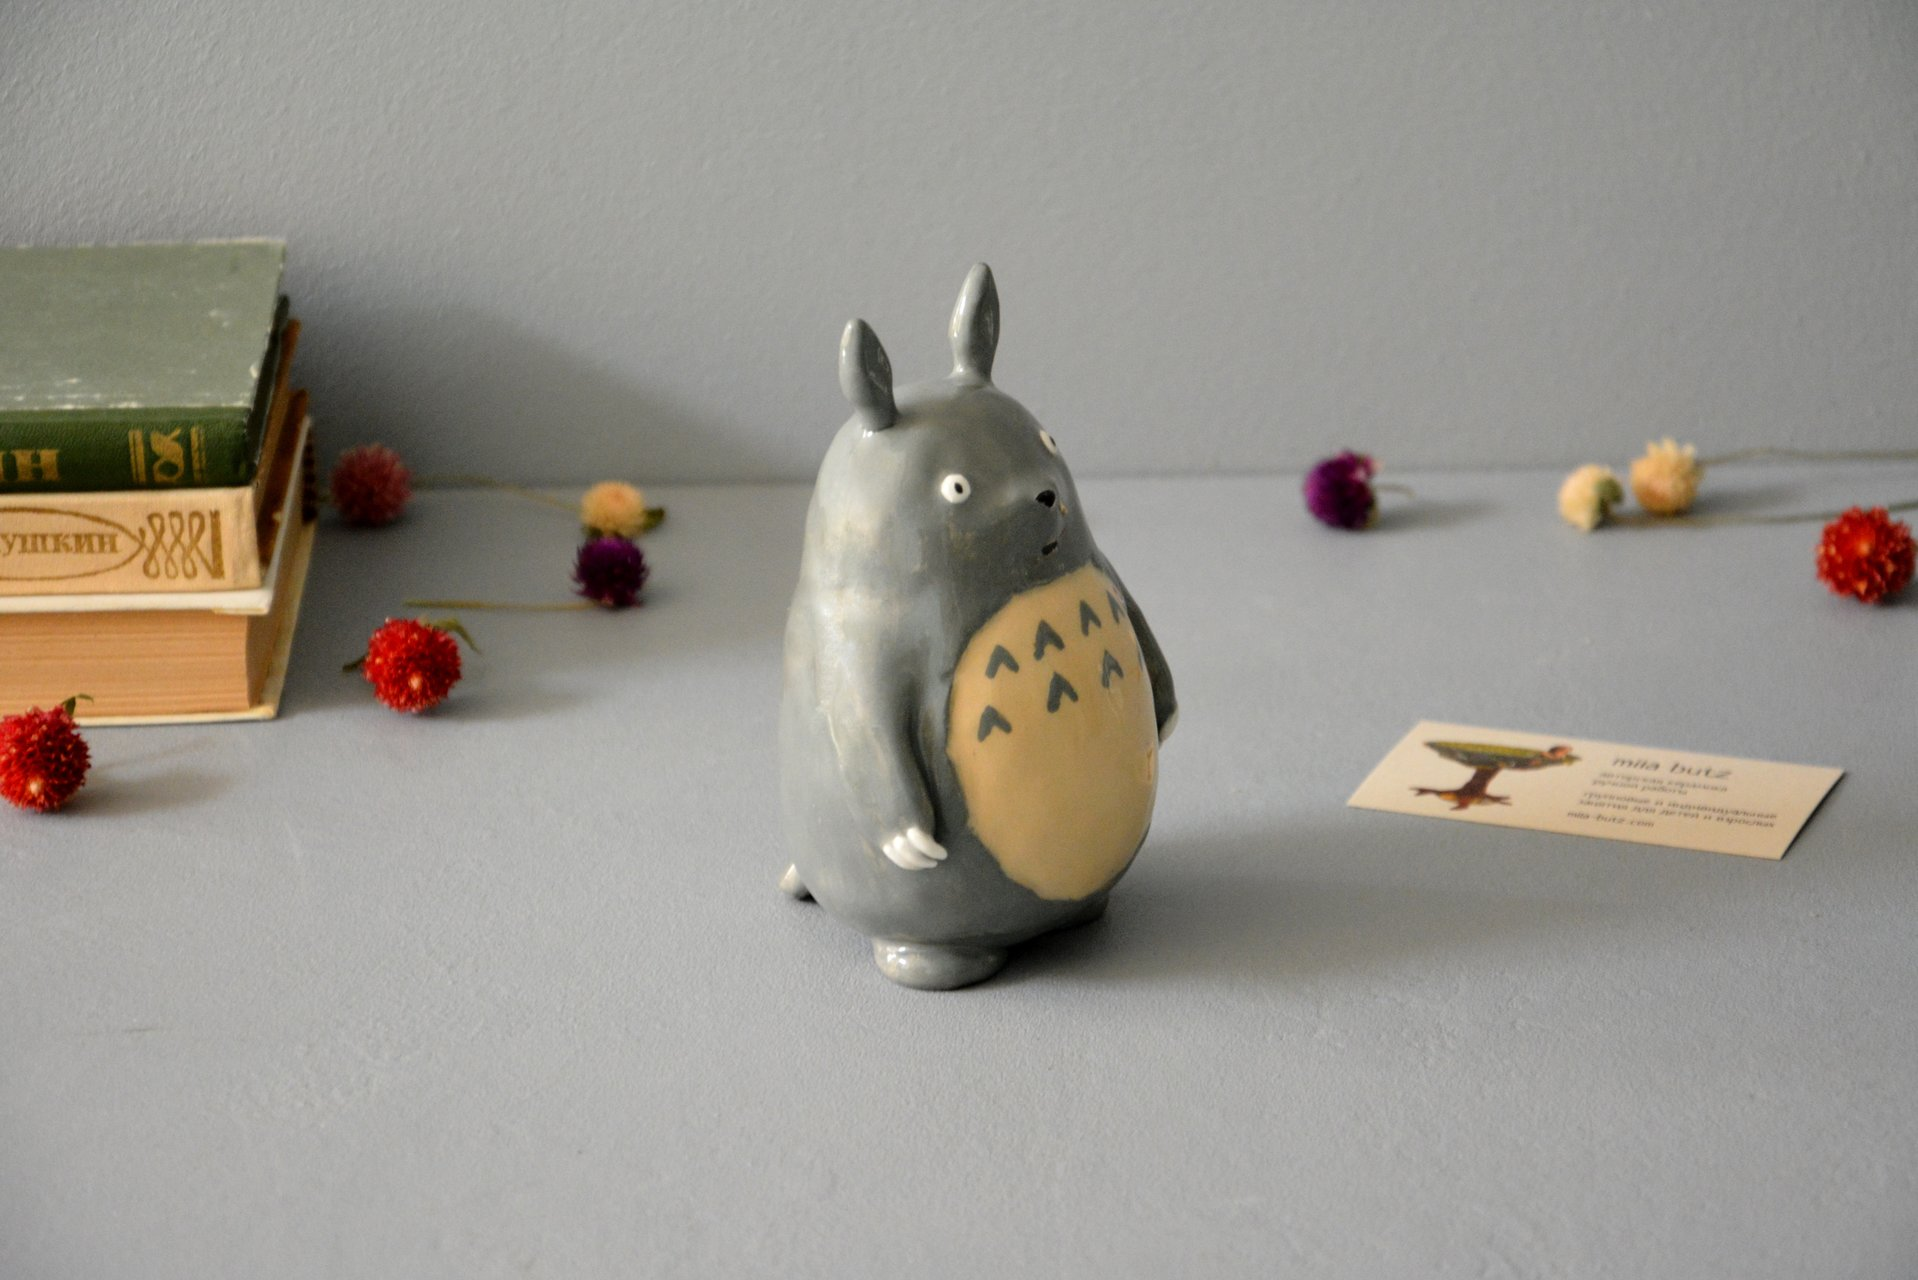 Ceramic figurine Totoro, height - 13 cm, photo 2 of 6.